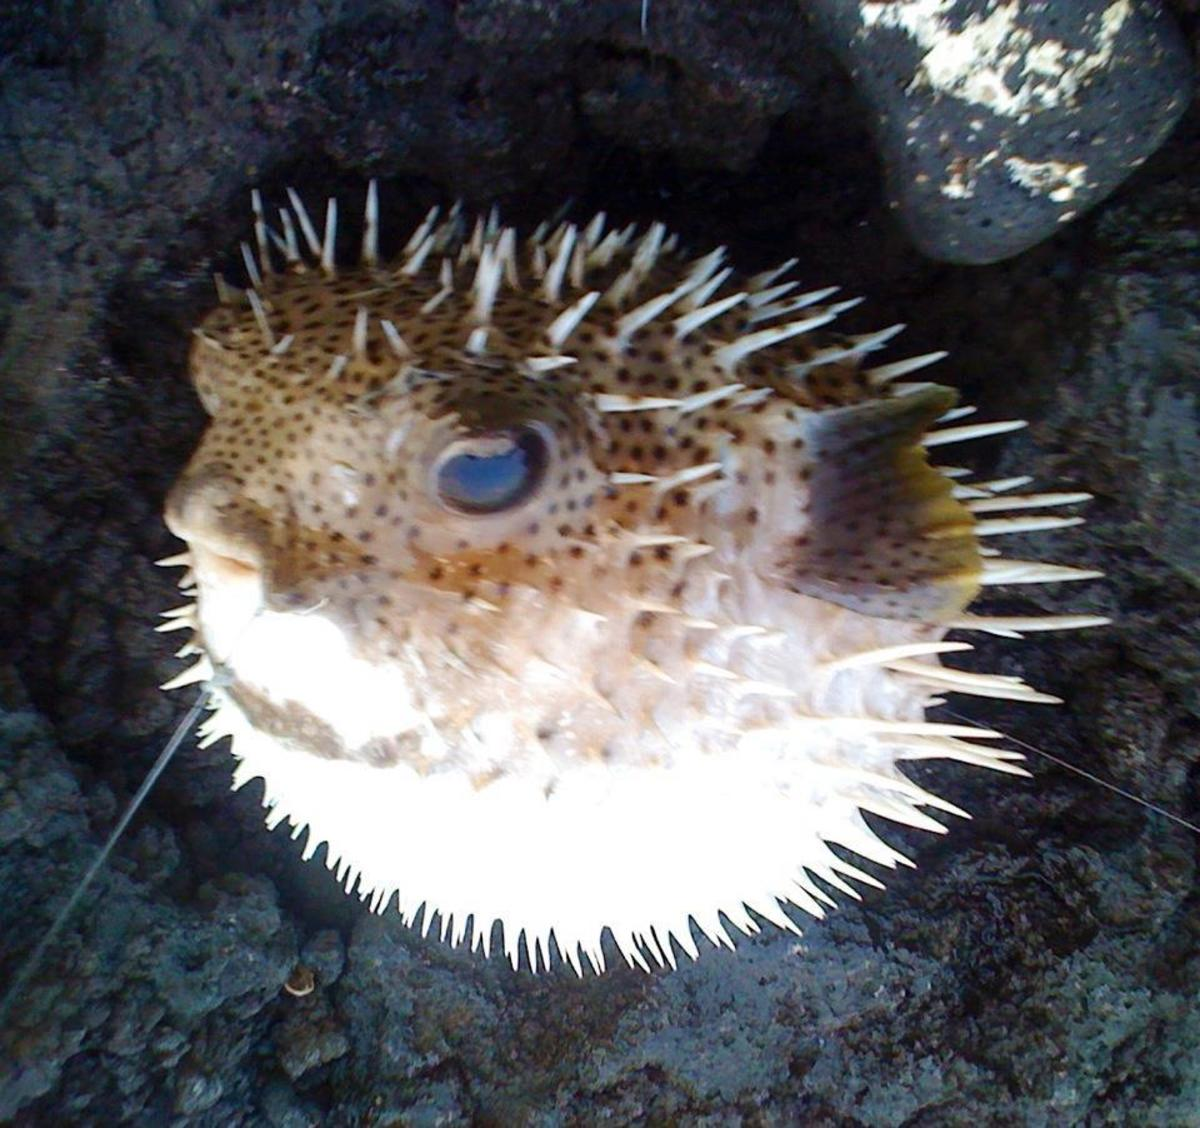 I caught this pufferfish by accident at A-Bay.  Be sure to study which fish are poisonous before eating them!